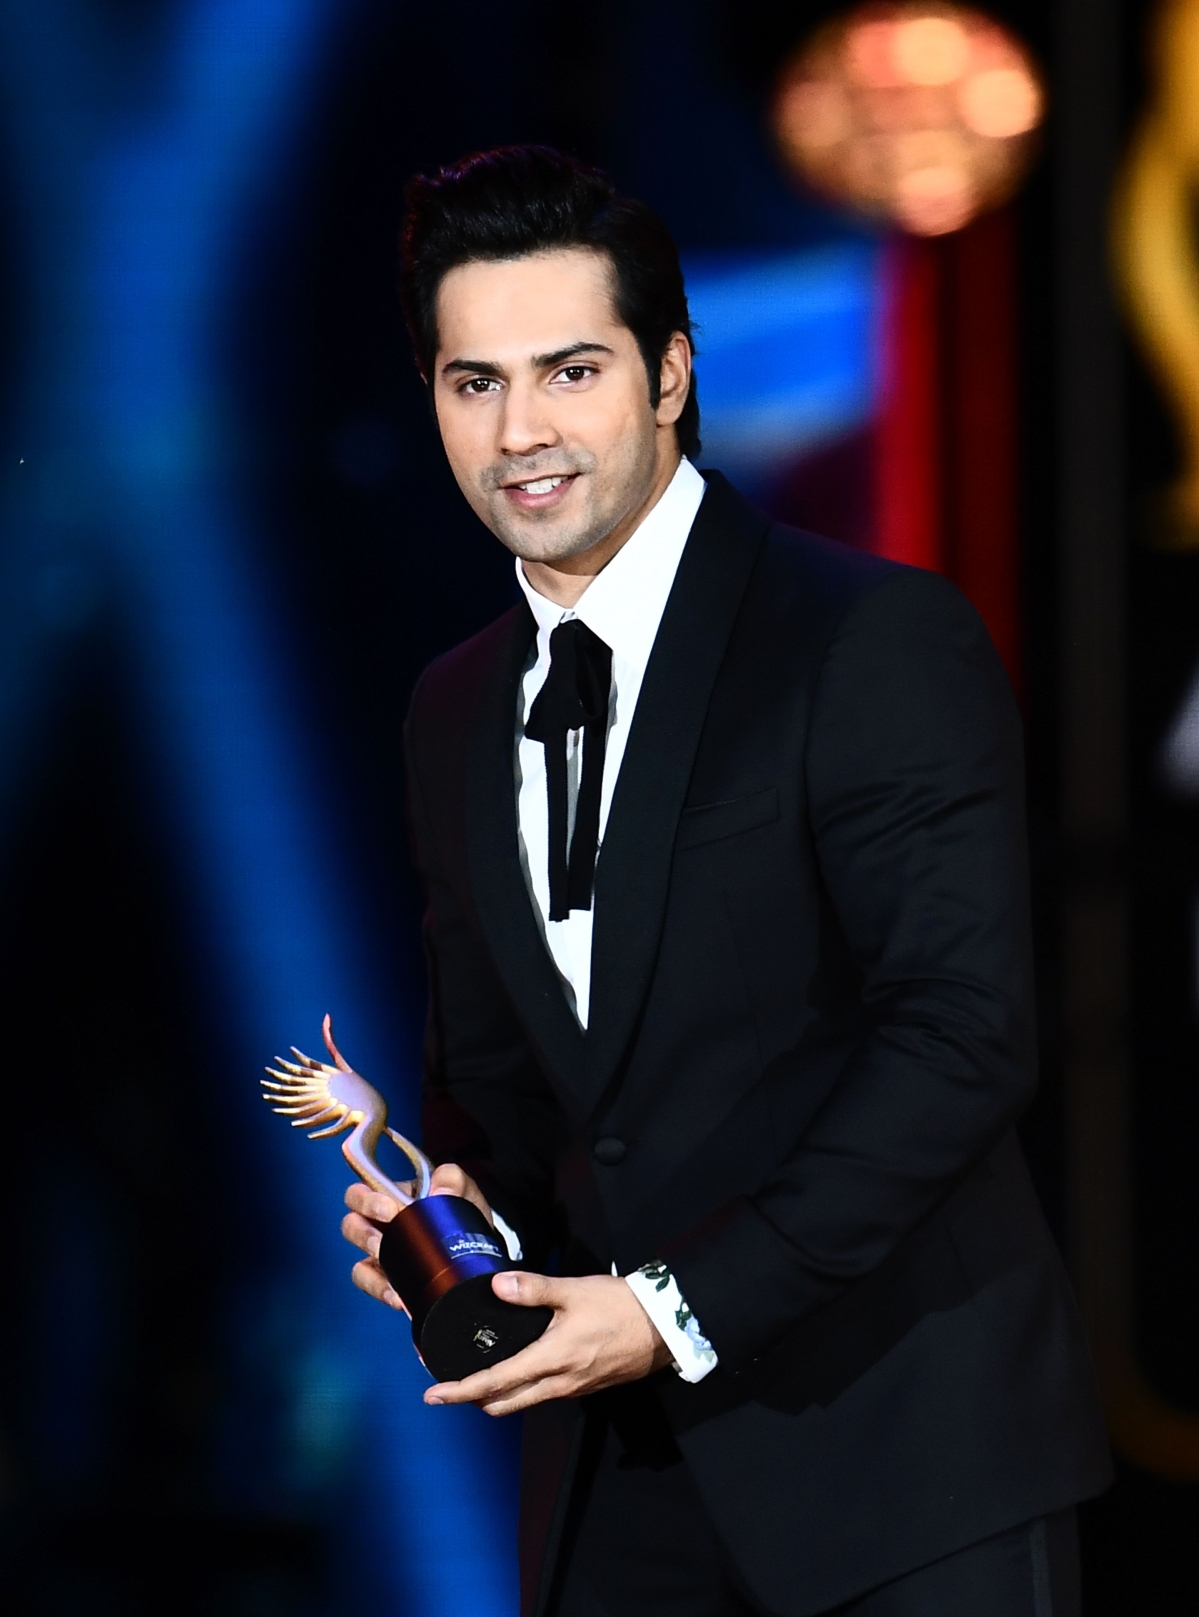 """Winner of Performance in a Comic Role, Varun Dhawan (L) for """"Dishoom"""" accepts the award during the 18th International Indian Film Academy (IIFA) Festival at the MetLife Stadium in East Rutherford, New Jersey, on July 15, 2017. / AFP PHOTO / JEWEL SAMAD"""